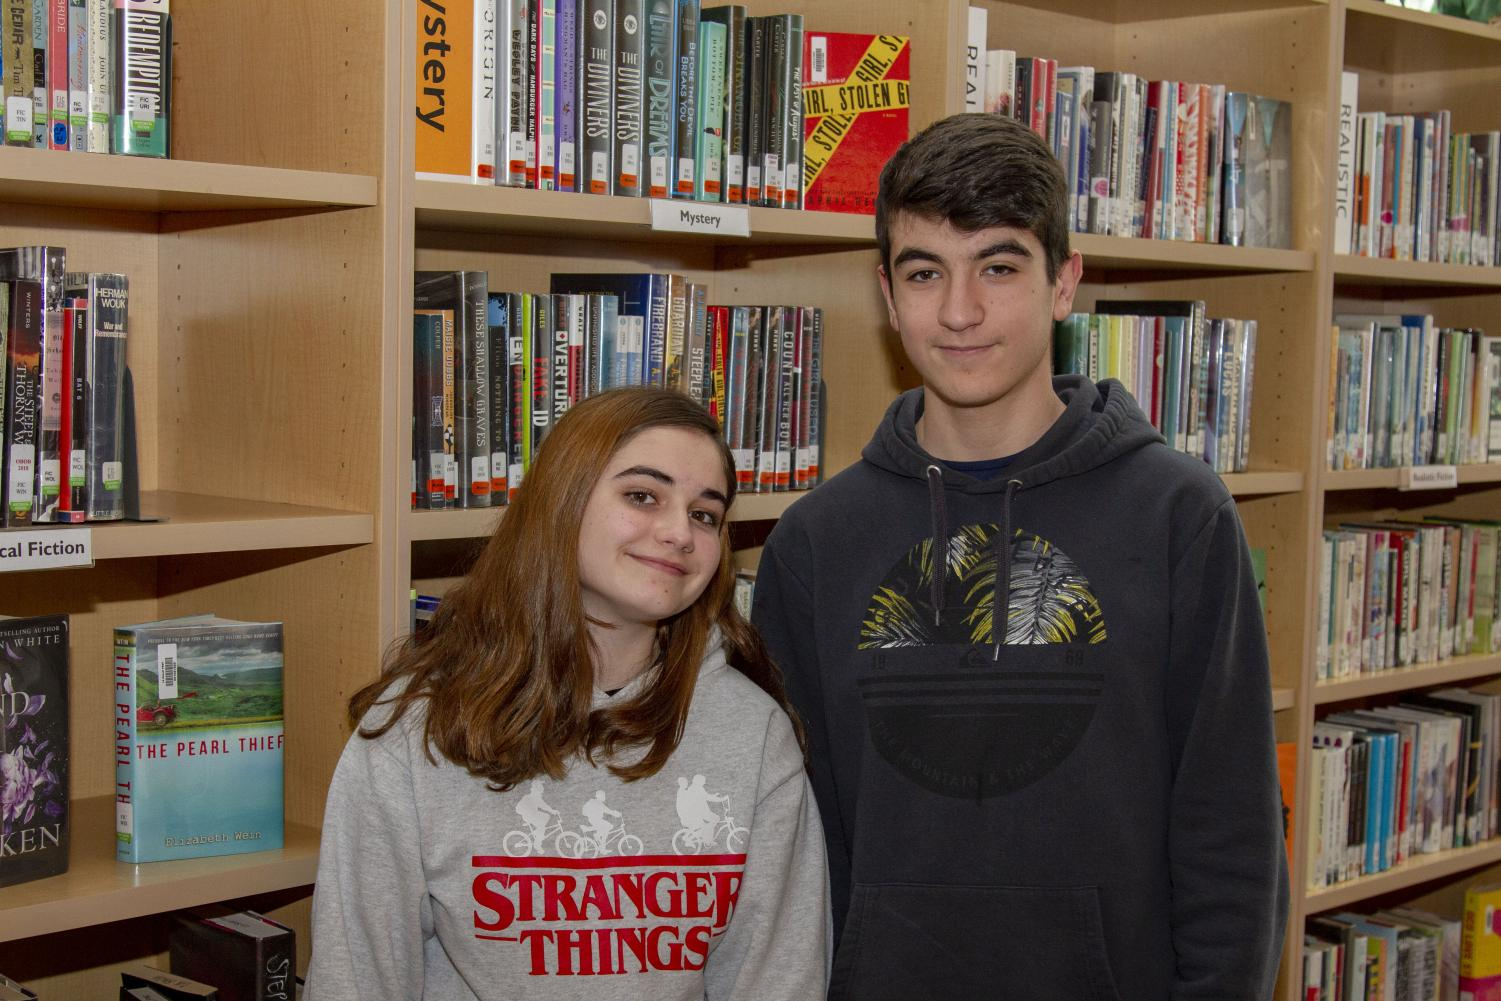 Sophomore exchange students Alicia Merayo Alonso and Jorge Carbonero Asin are here through Friday, March 8.